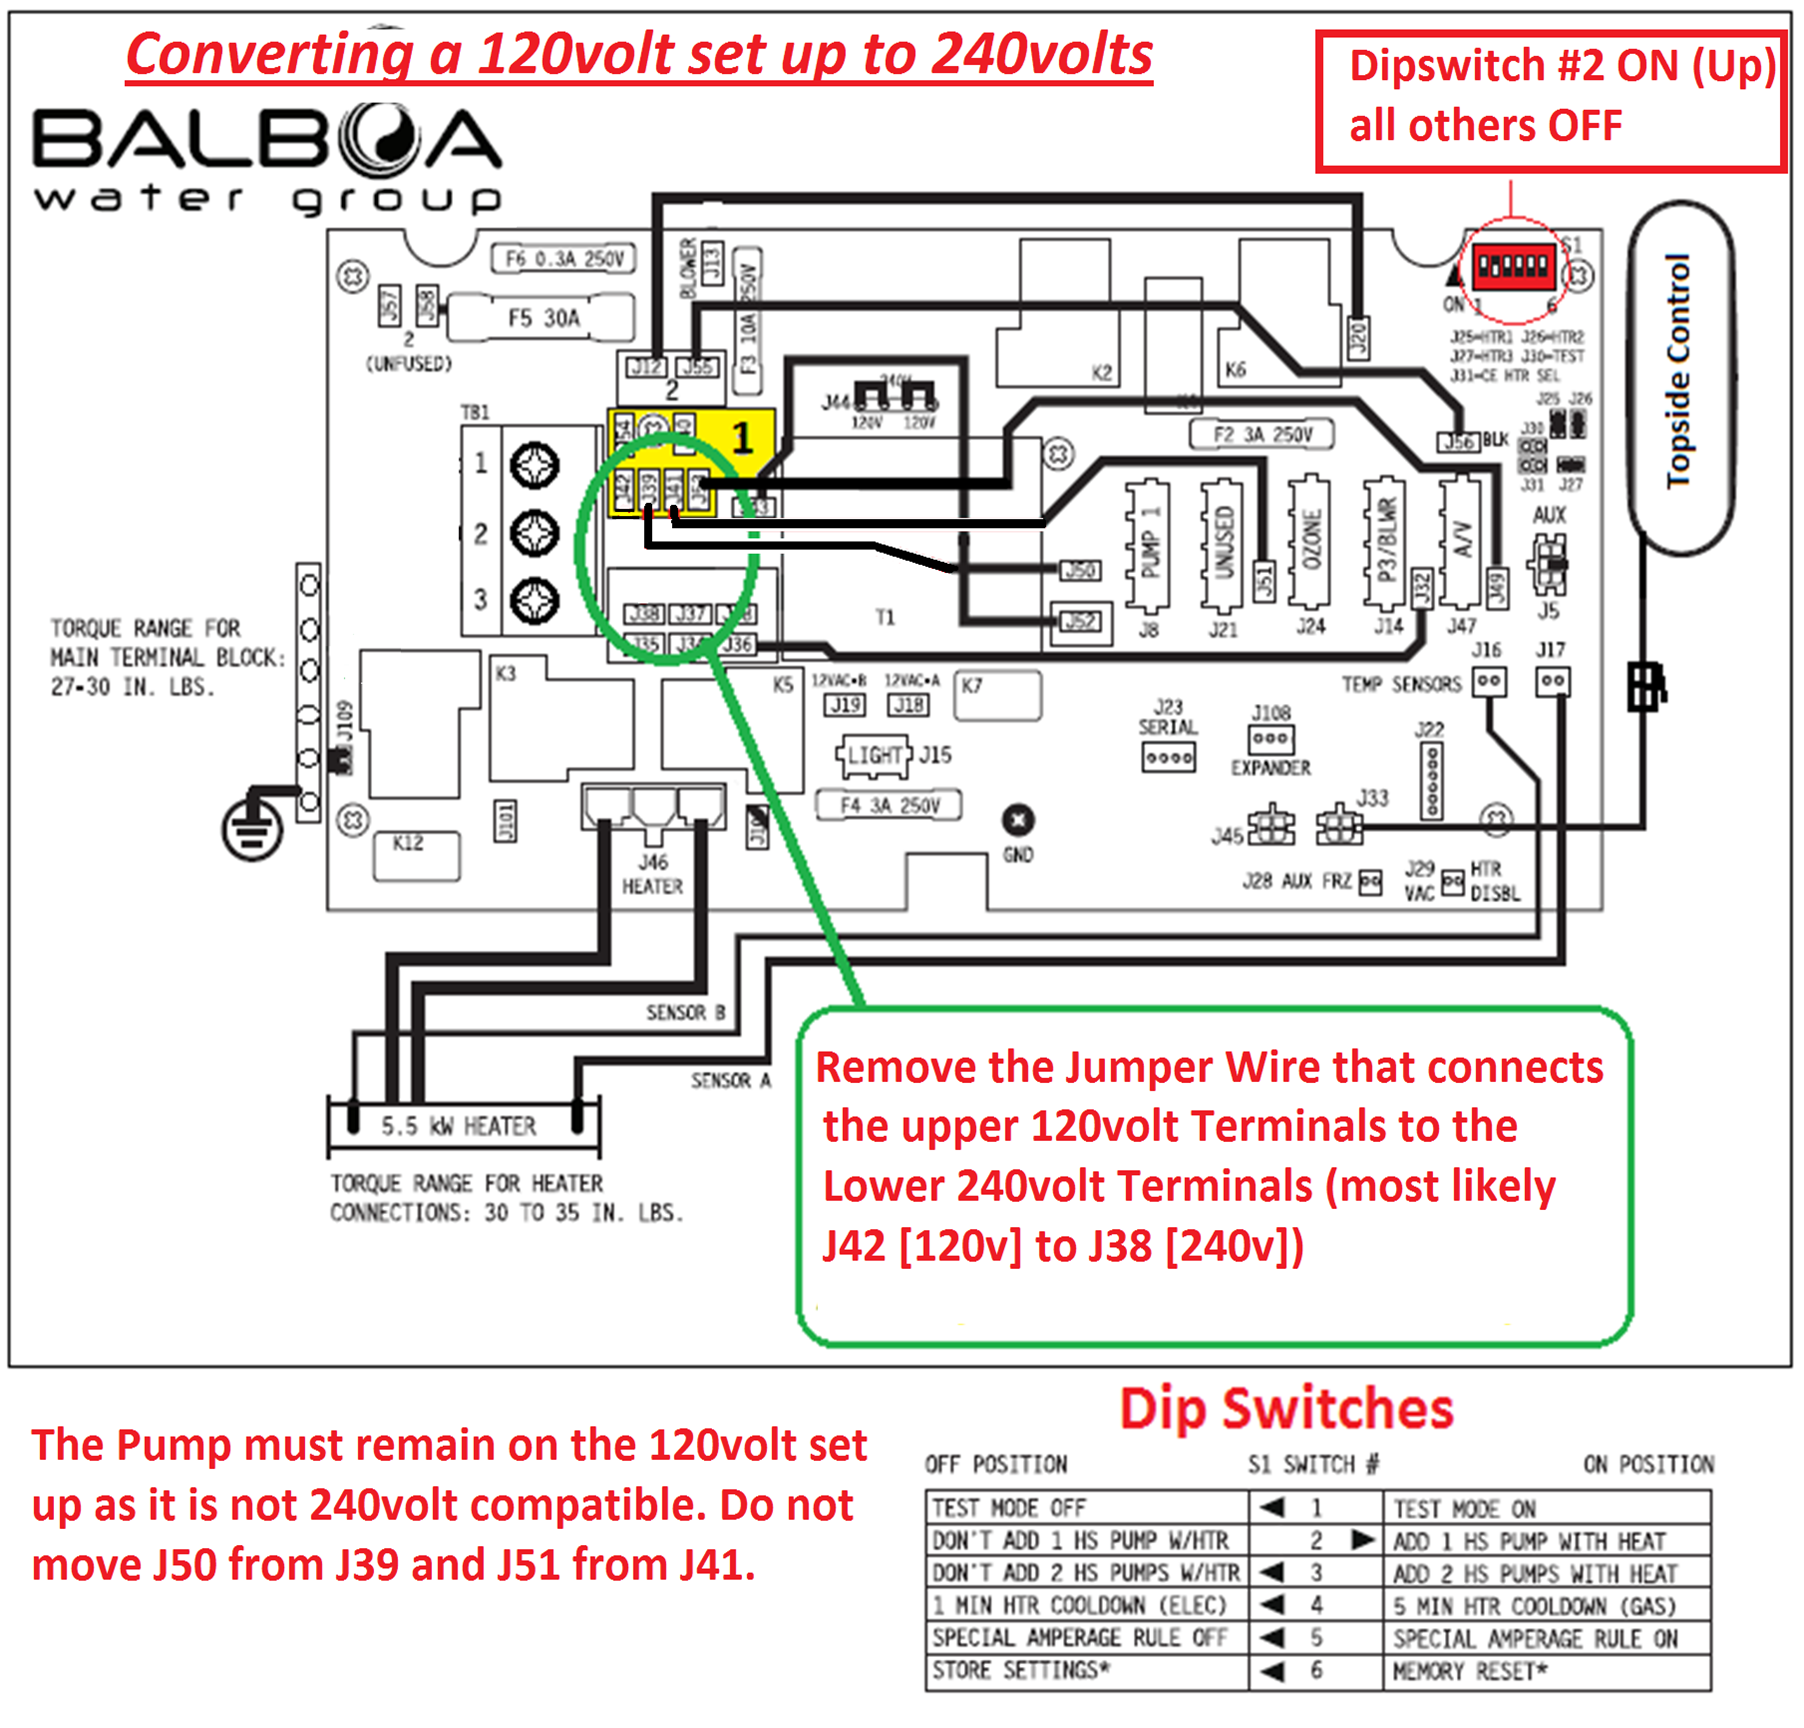 Single Speed Spa Circulation Pump Wiring Diagram